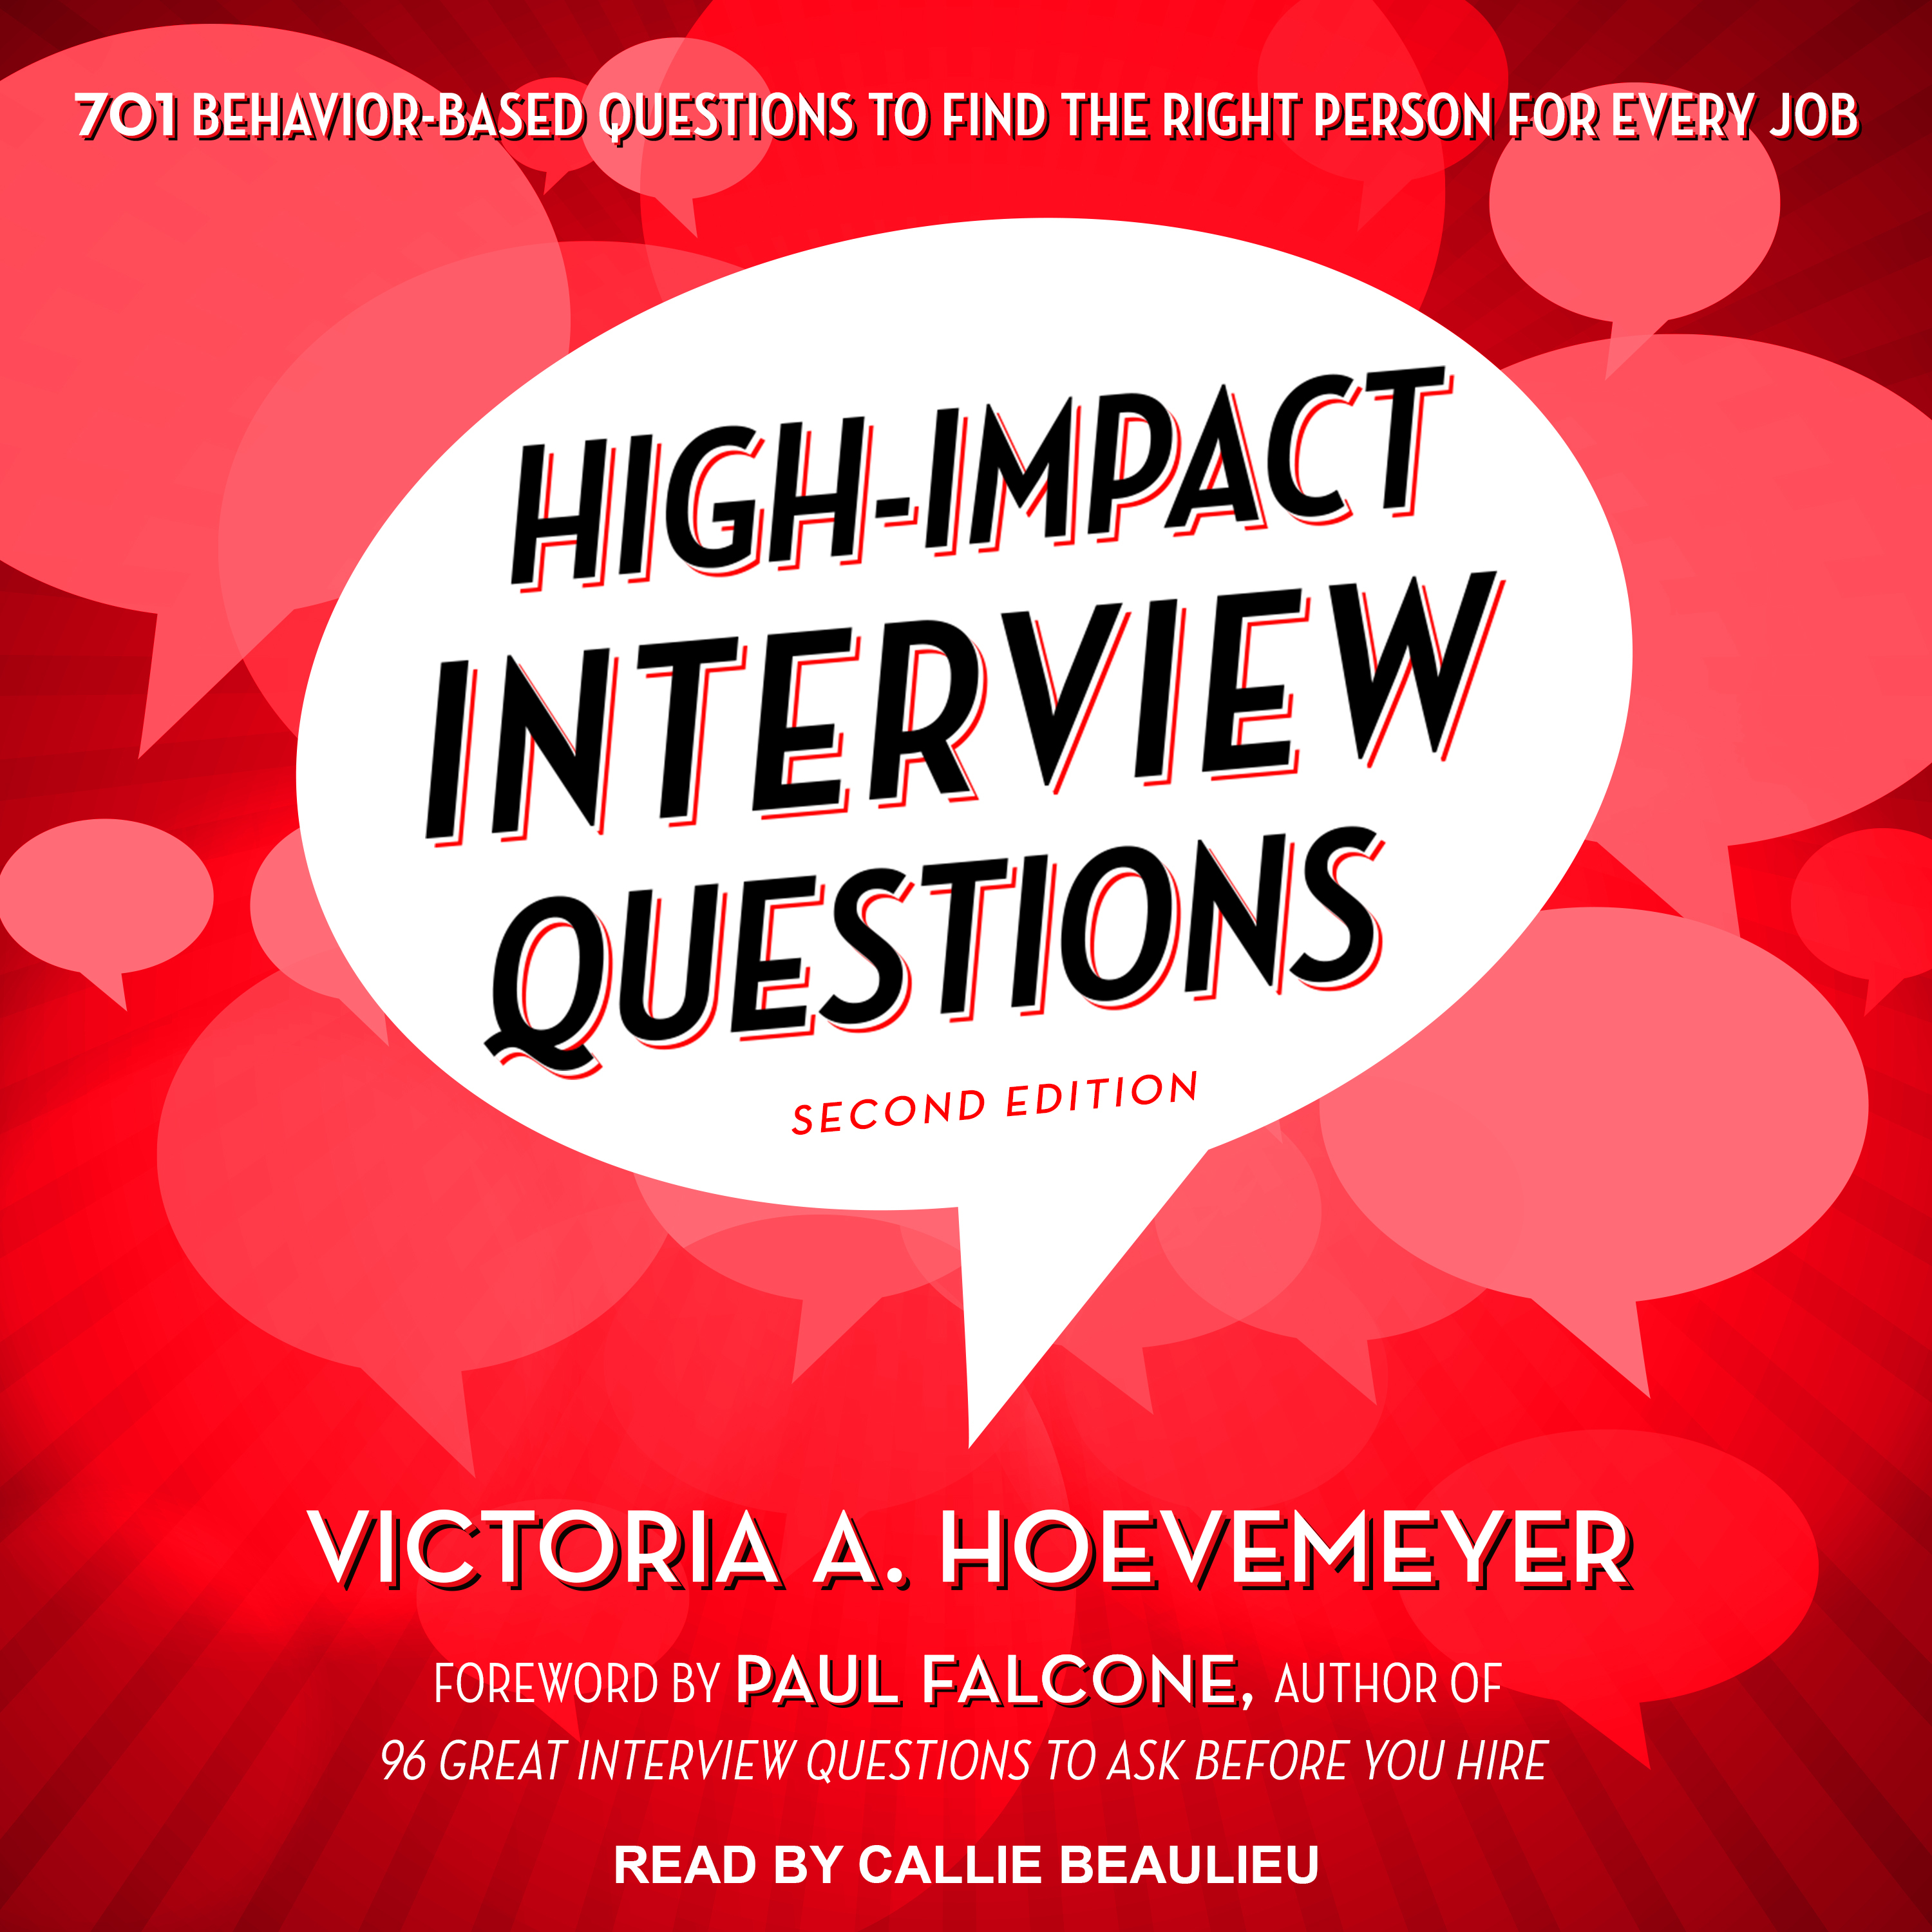 High-Impact Interview Questions: 701 Behavior-Based Questions to Find the  Right Person